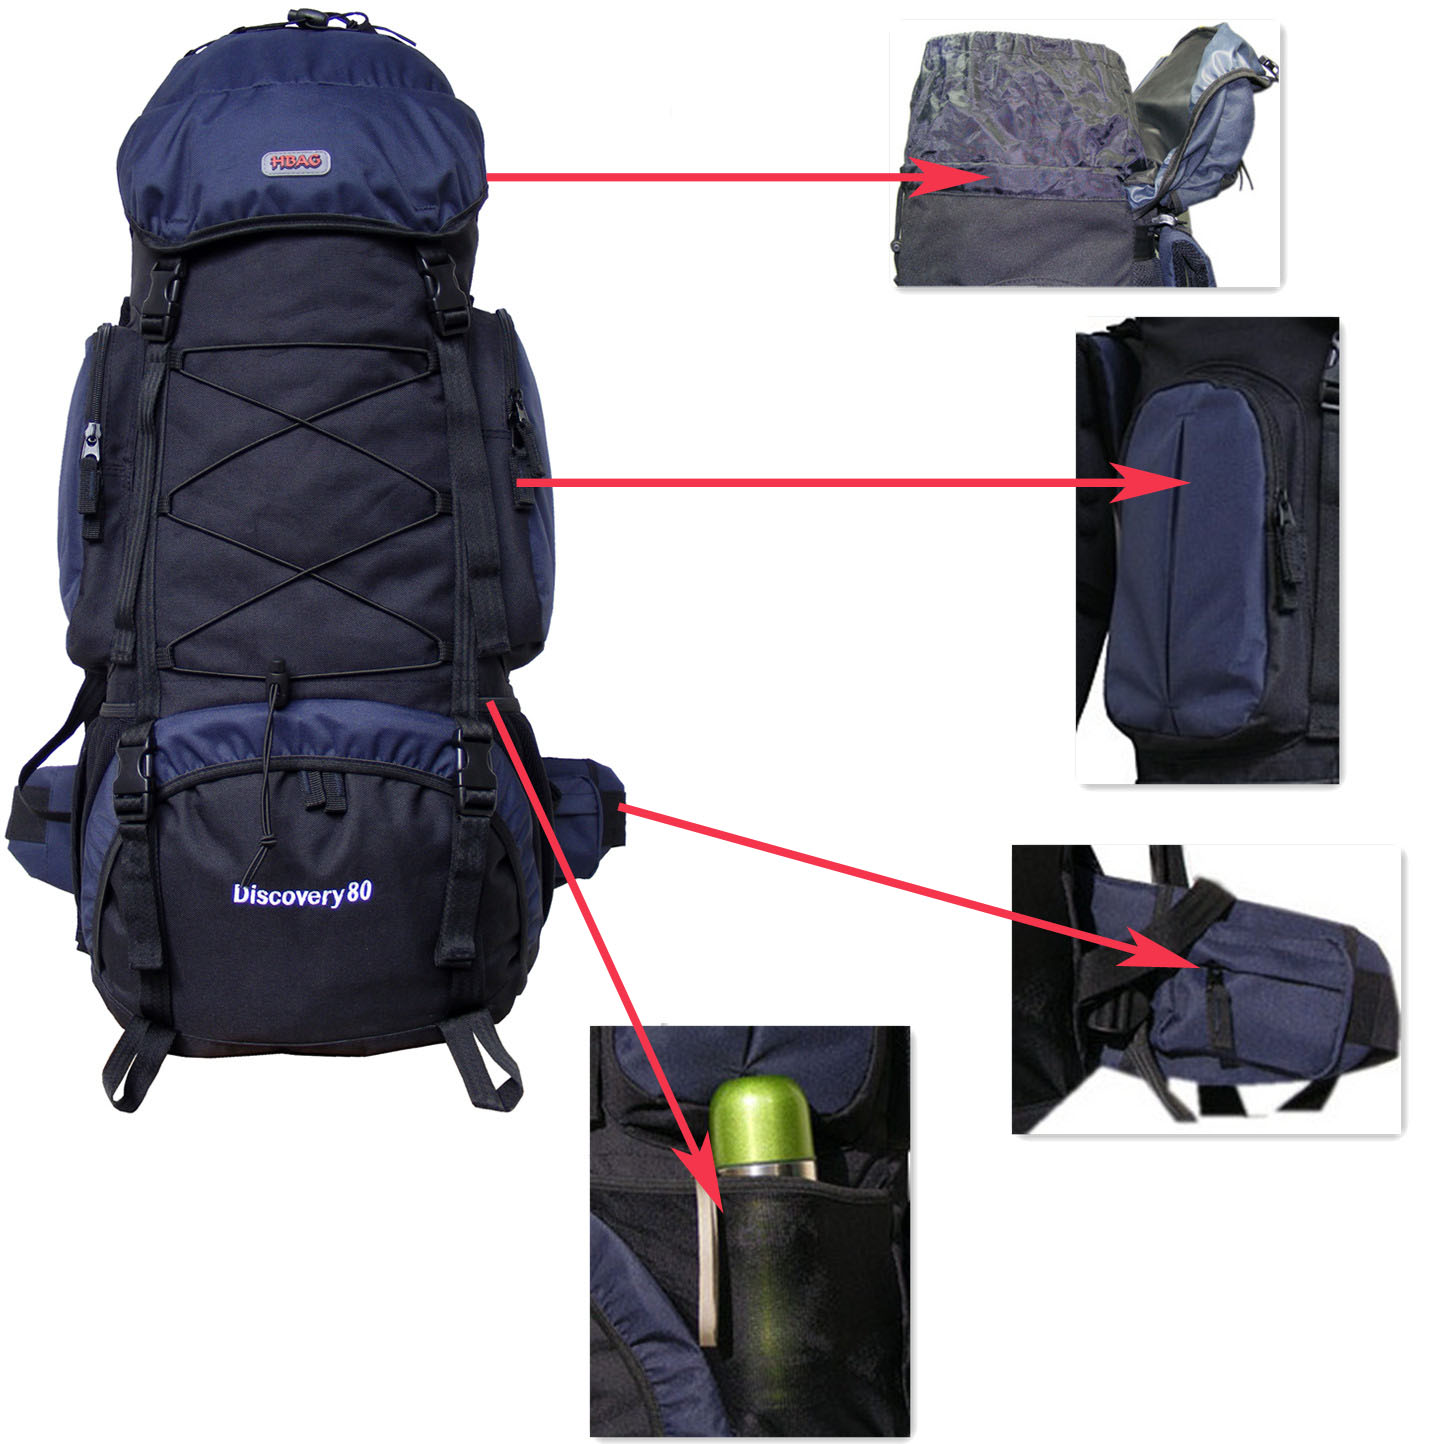 HBAG H8068GR Discovery 80L 5400ci Internal Frame Camping Hiking Backpack - Gray/Black